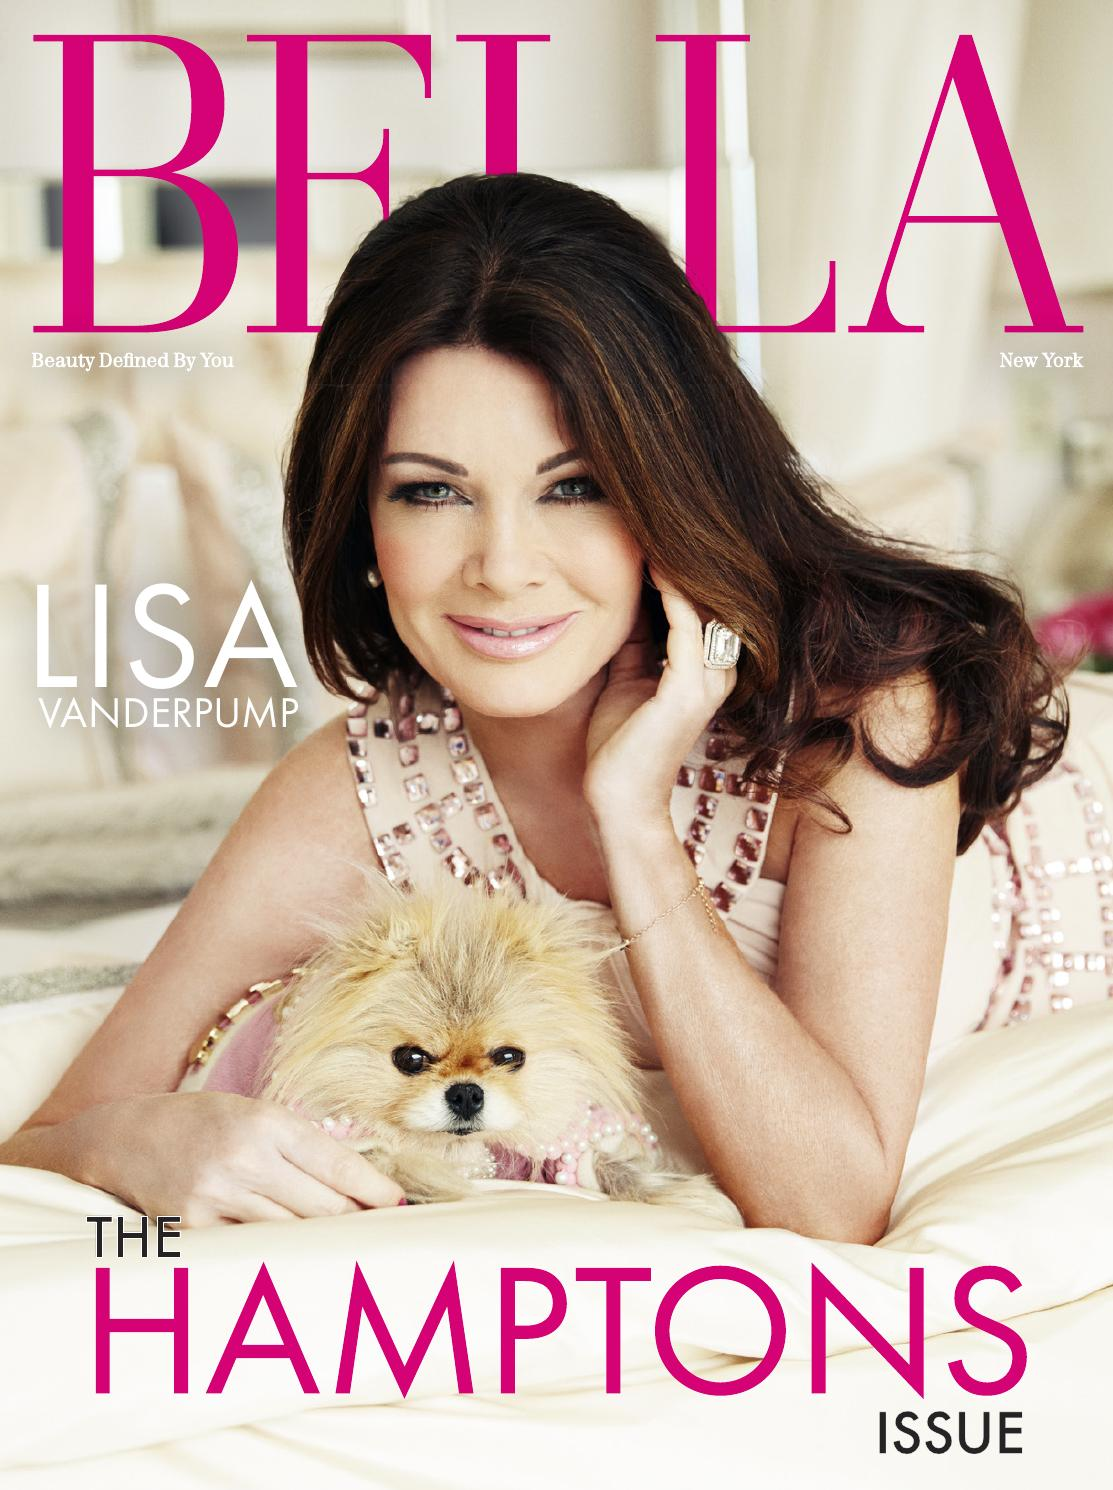 03e94d6027 BELLA New York - July August 2015 by BELLA Media Group - issuu